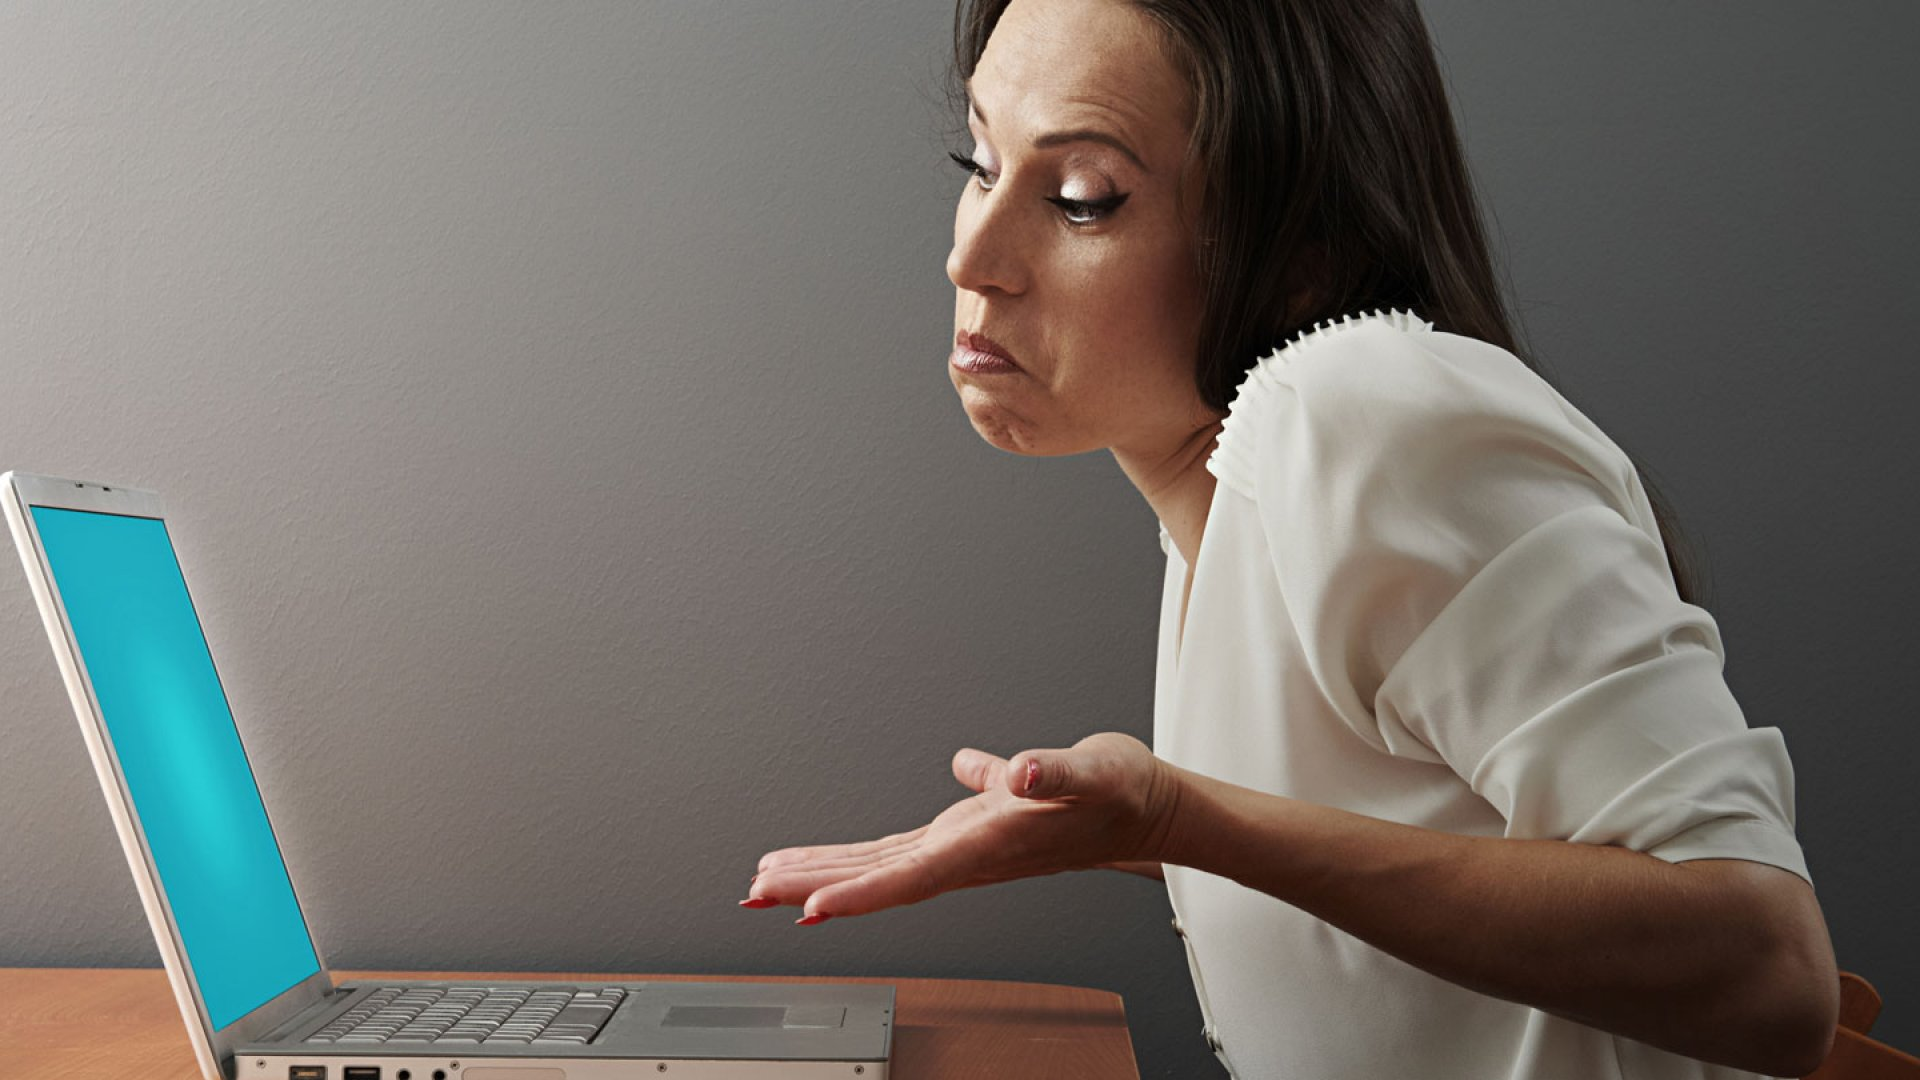 What's Wrong With Your Website? More Than You Think